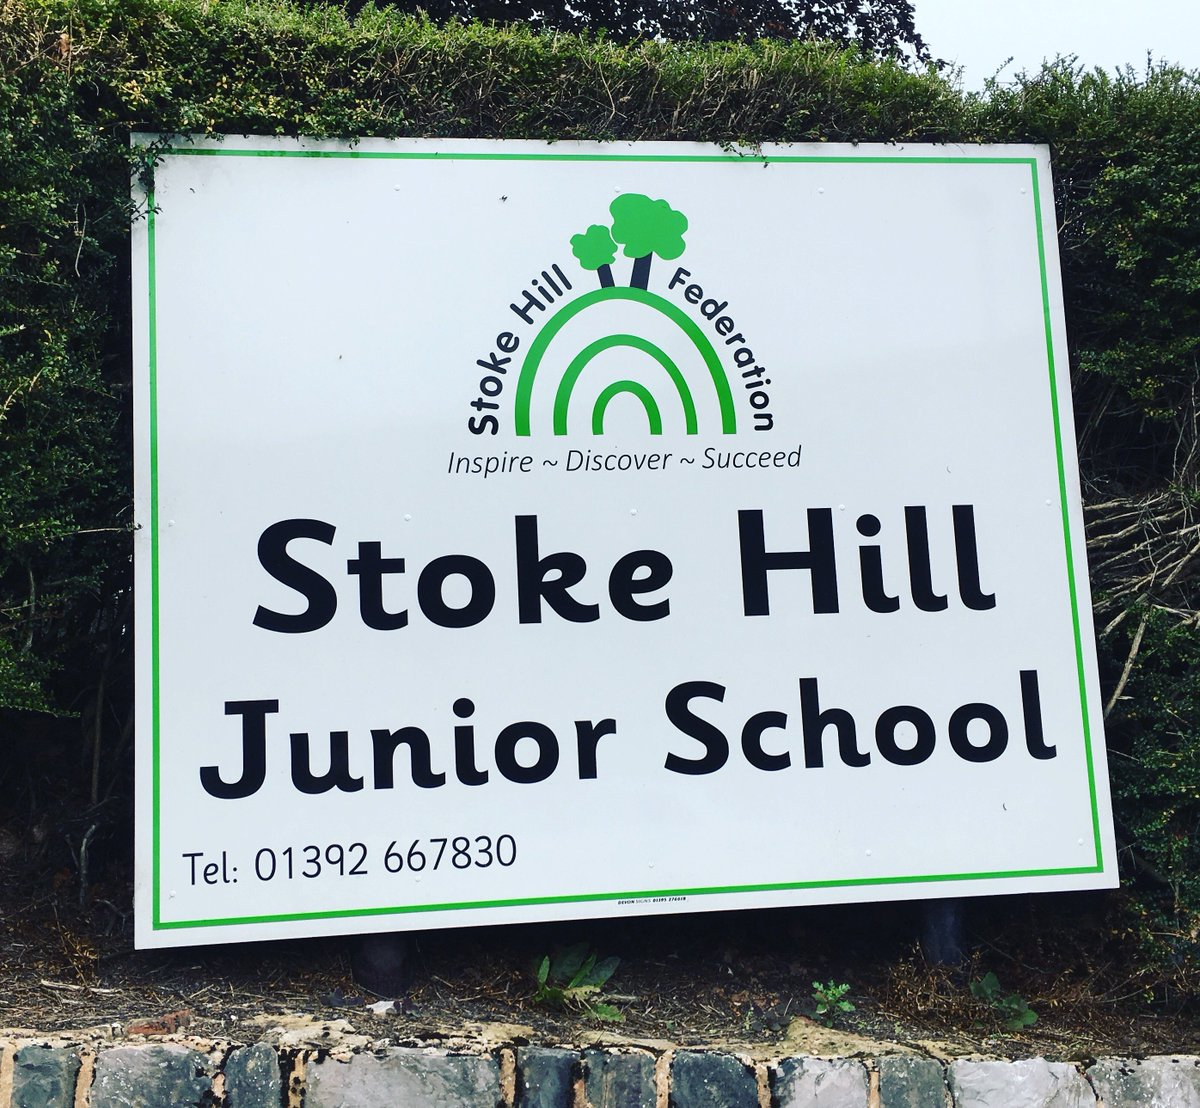 BOOM2nd #primaryschool of the day SO much #zumba fun!! #zumbakids #exeter #healthybodies #itswherethefunsat #learning @StokeFed<br>http://pic.twitter.com/FKGKo4KXpx